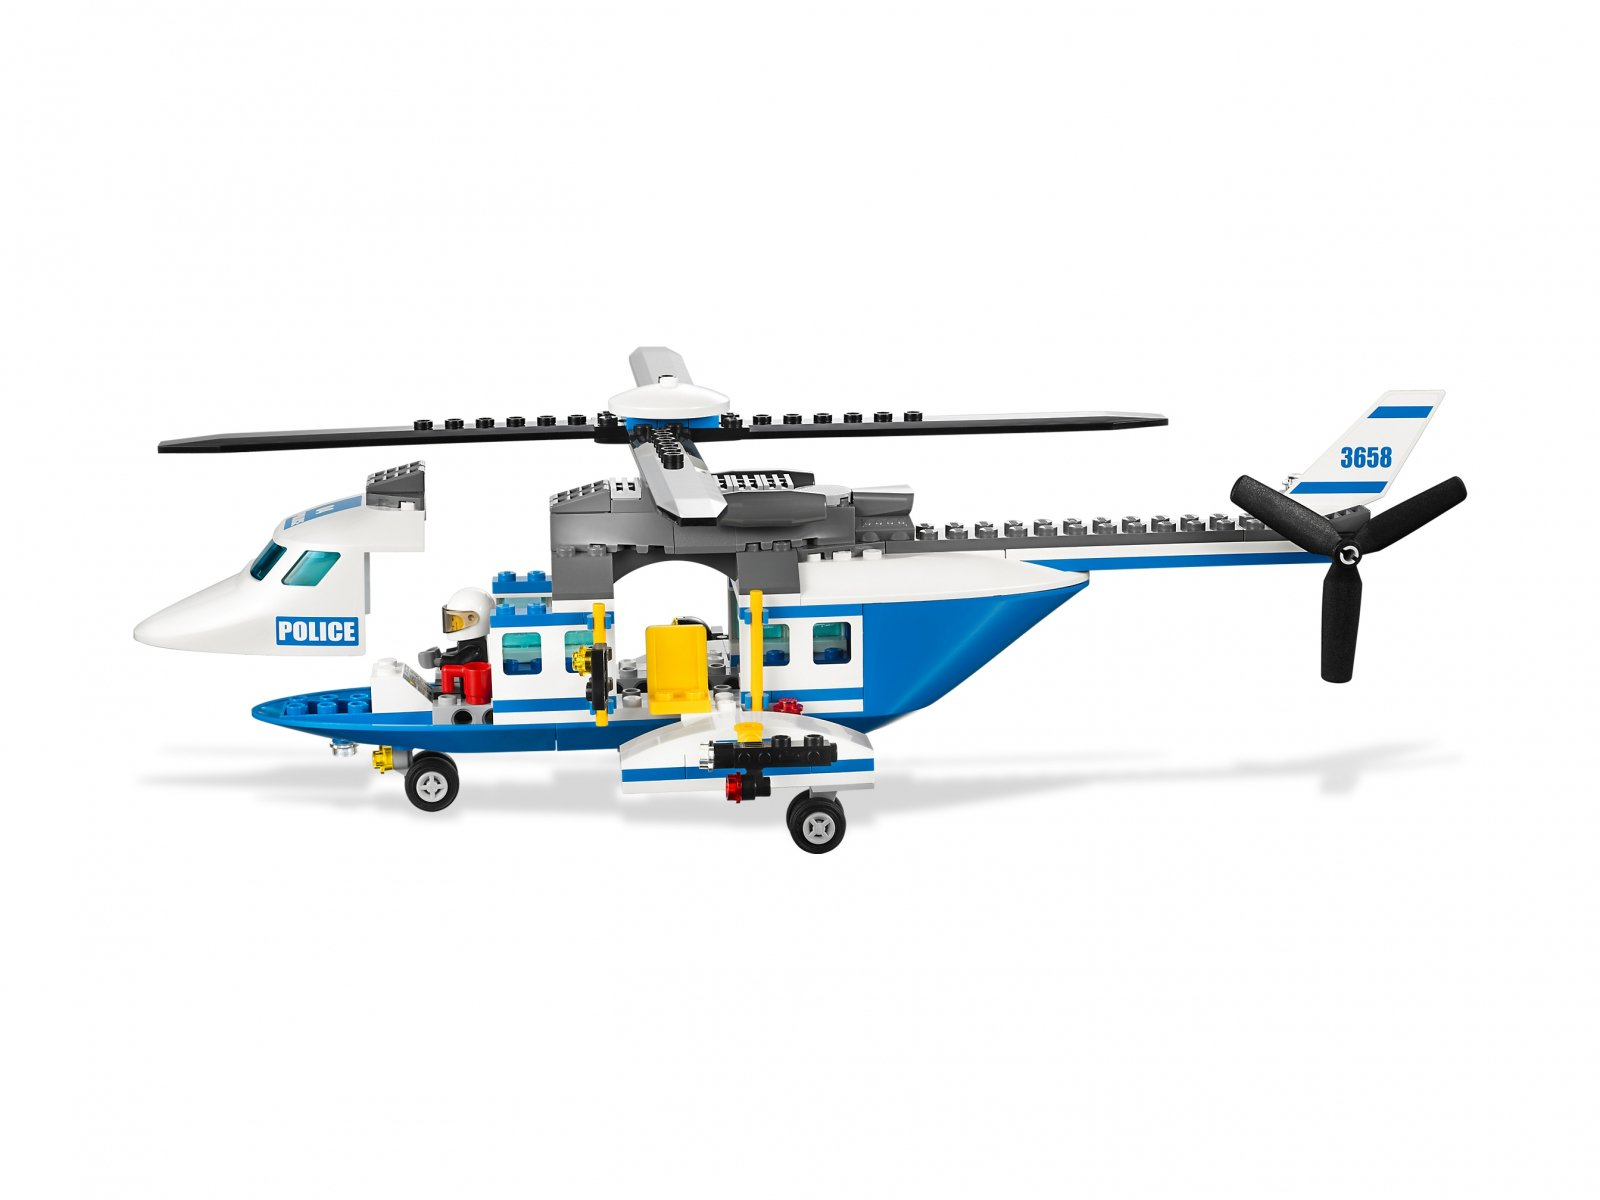 LEGO City 3658 Police Helicopter